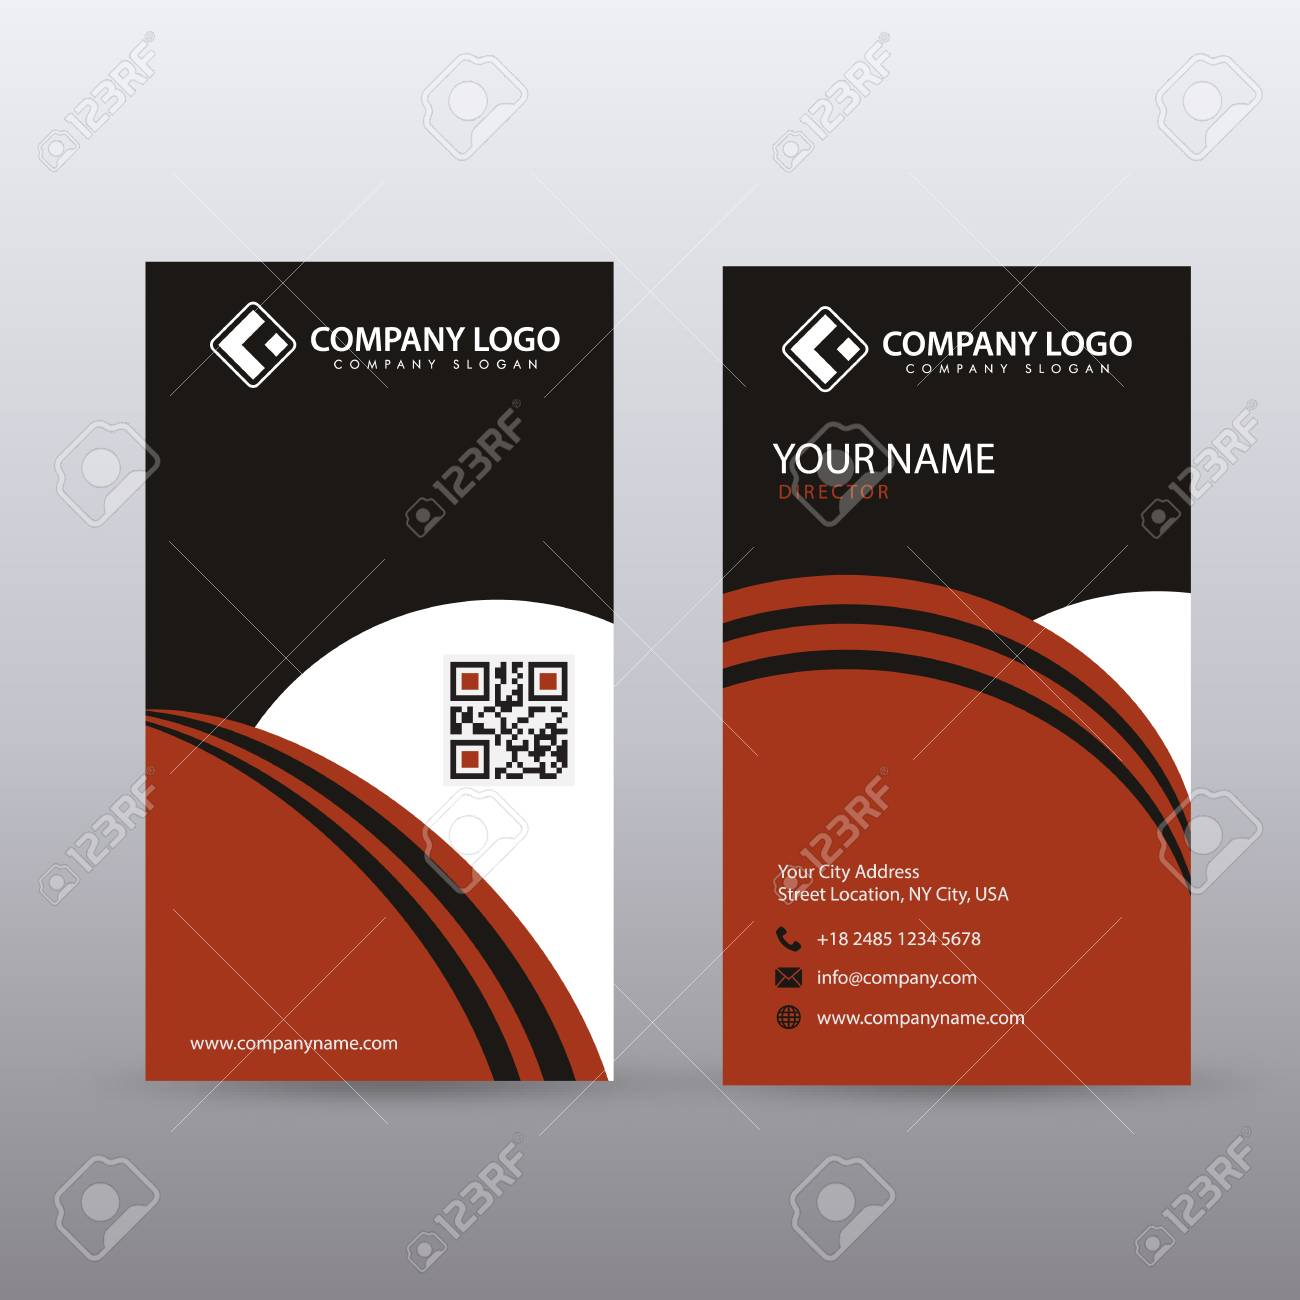 Modern creative vertical clean business card template with red modern creative vertical clean business card template with red black color fully editable vector accmission